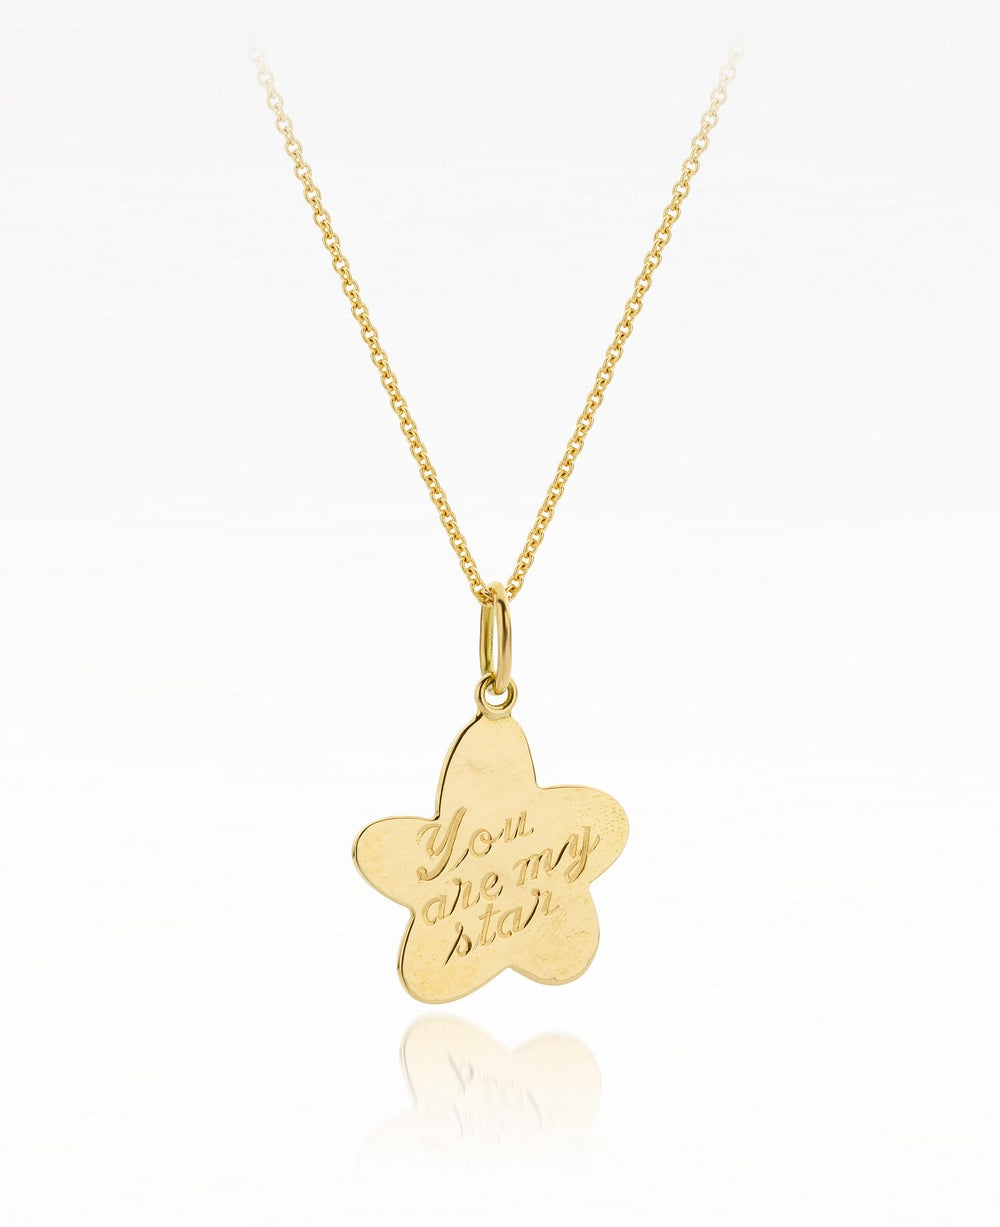 Image of pendant 'You are my star' in Fair trade gold - hanger - medaillon